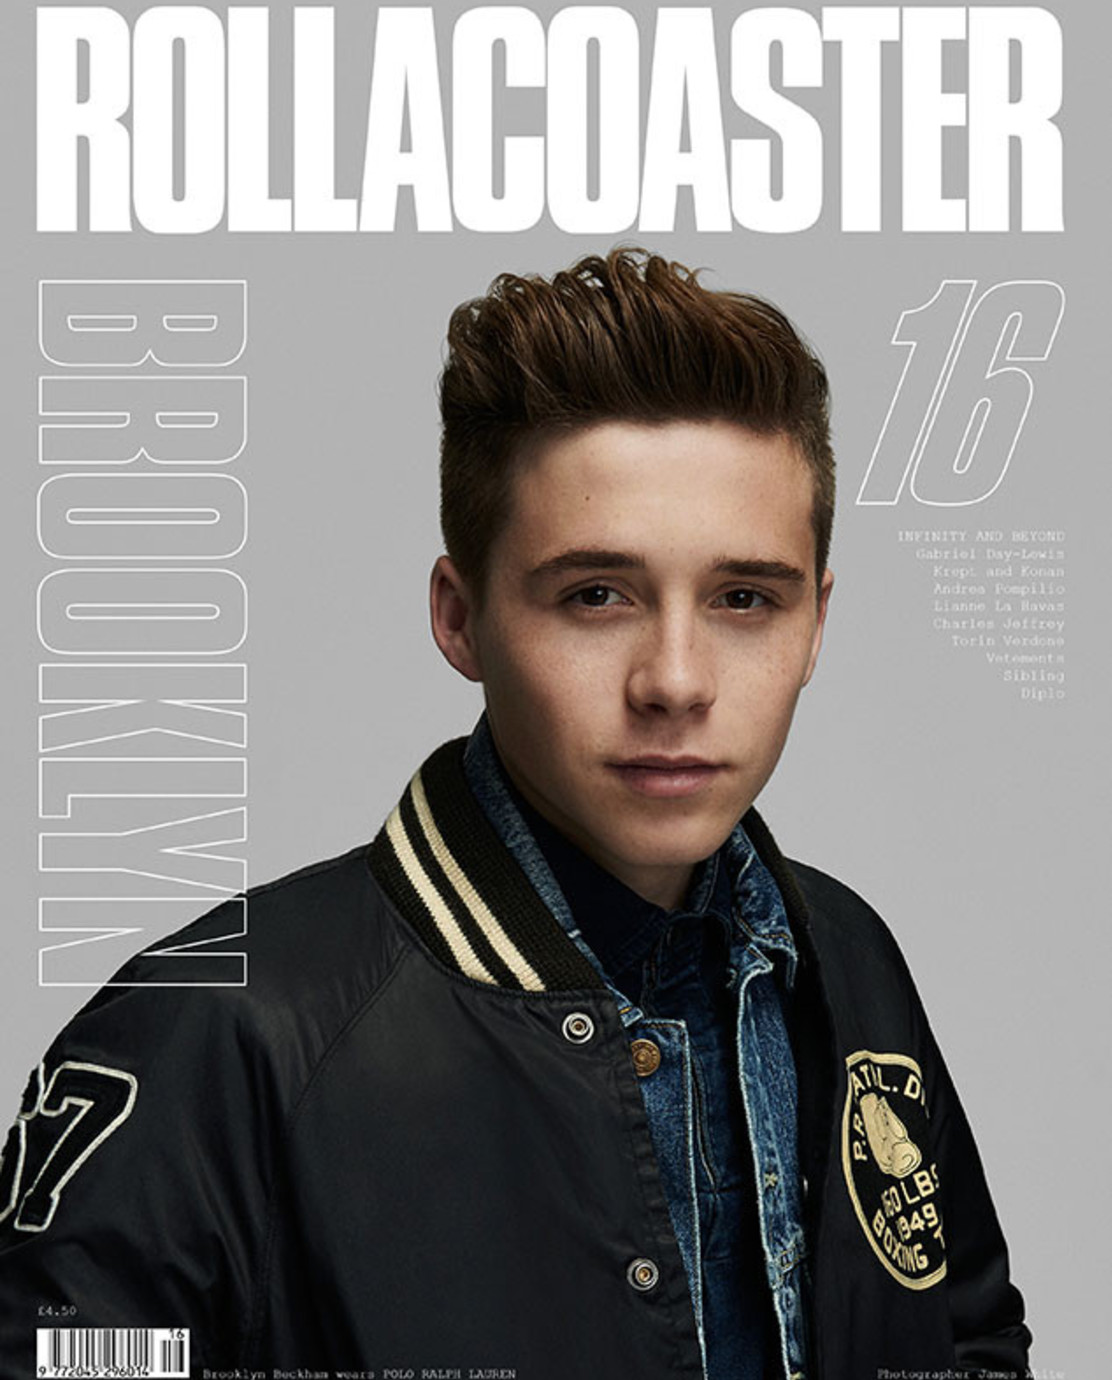 Rollacoaster magazine shoots at SHED London photography studio hire